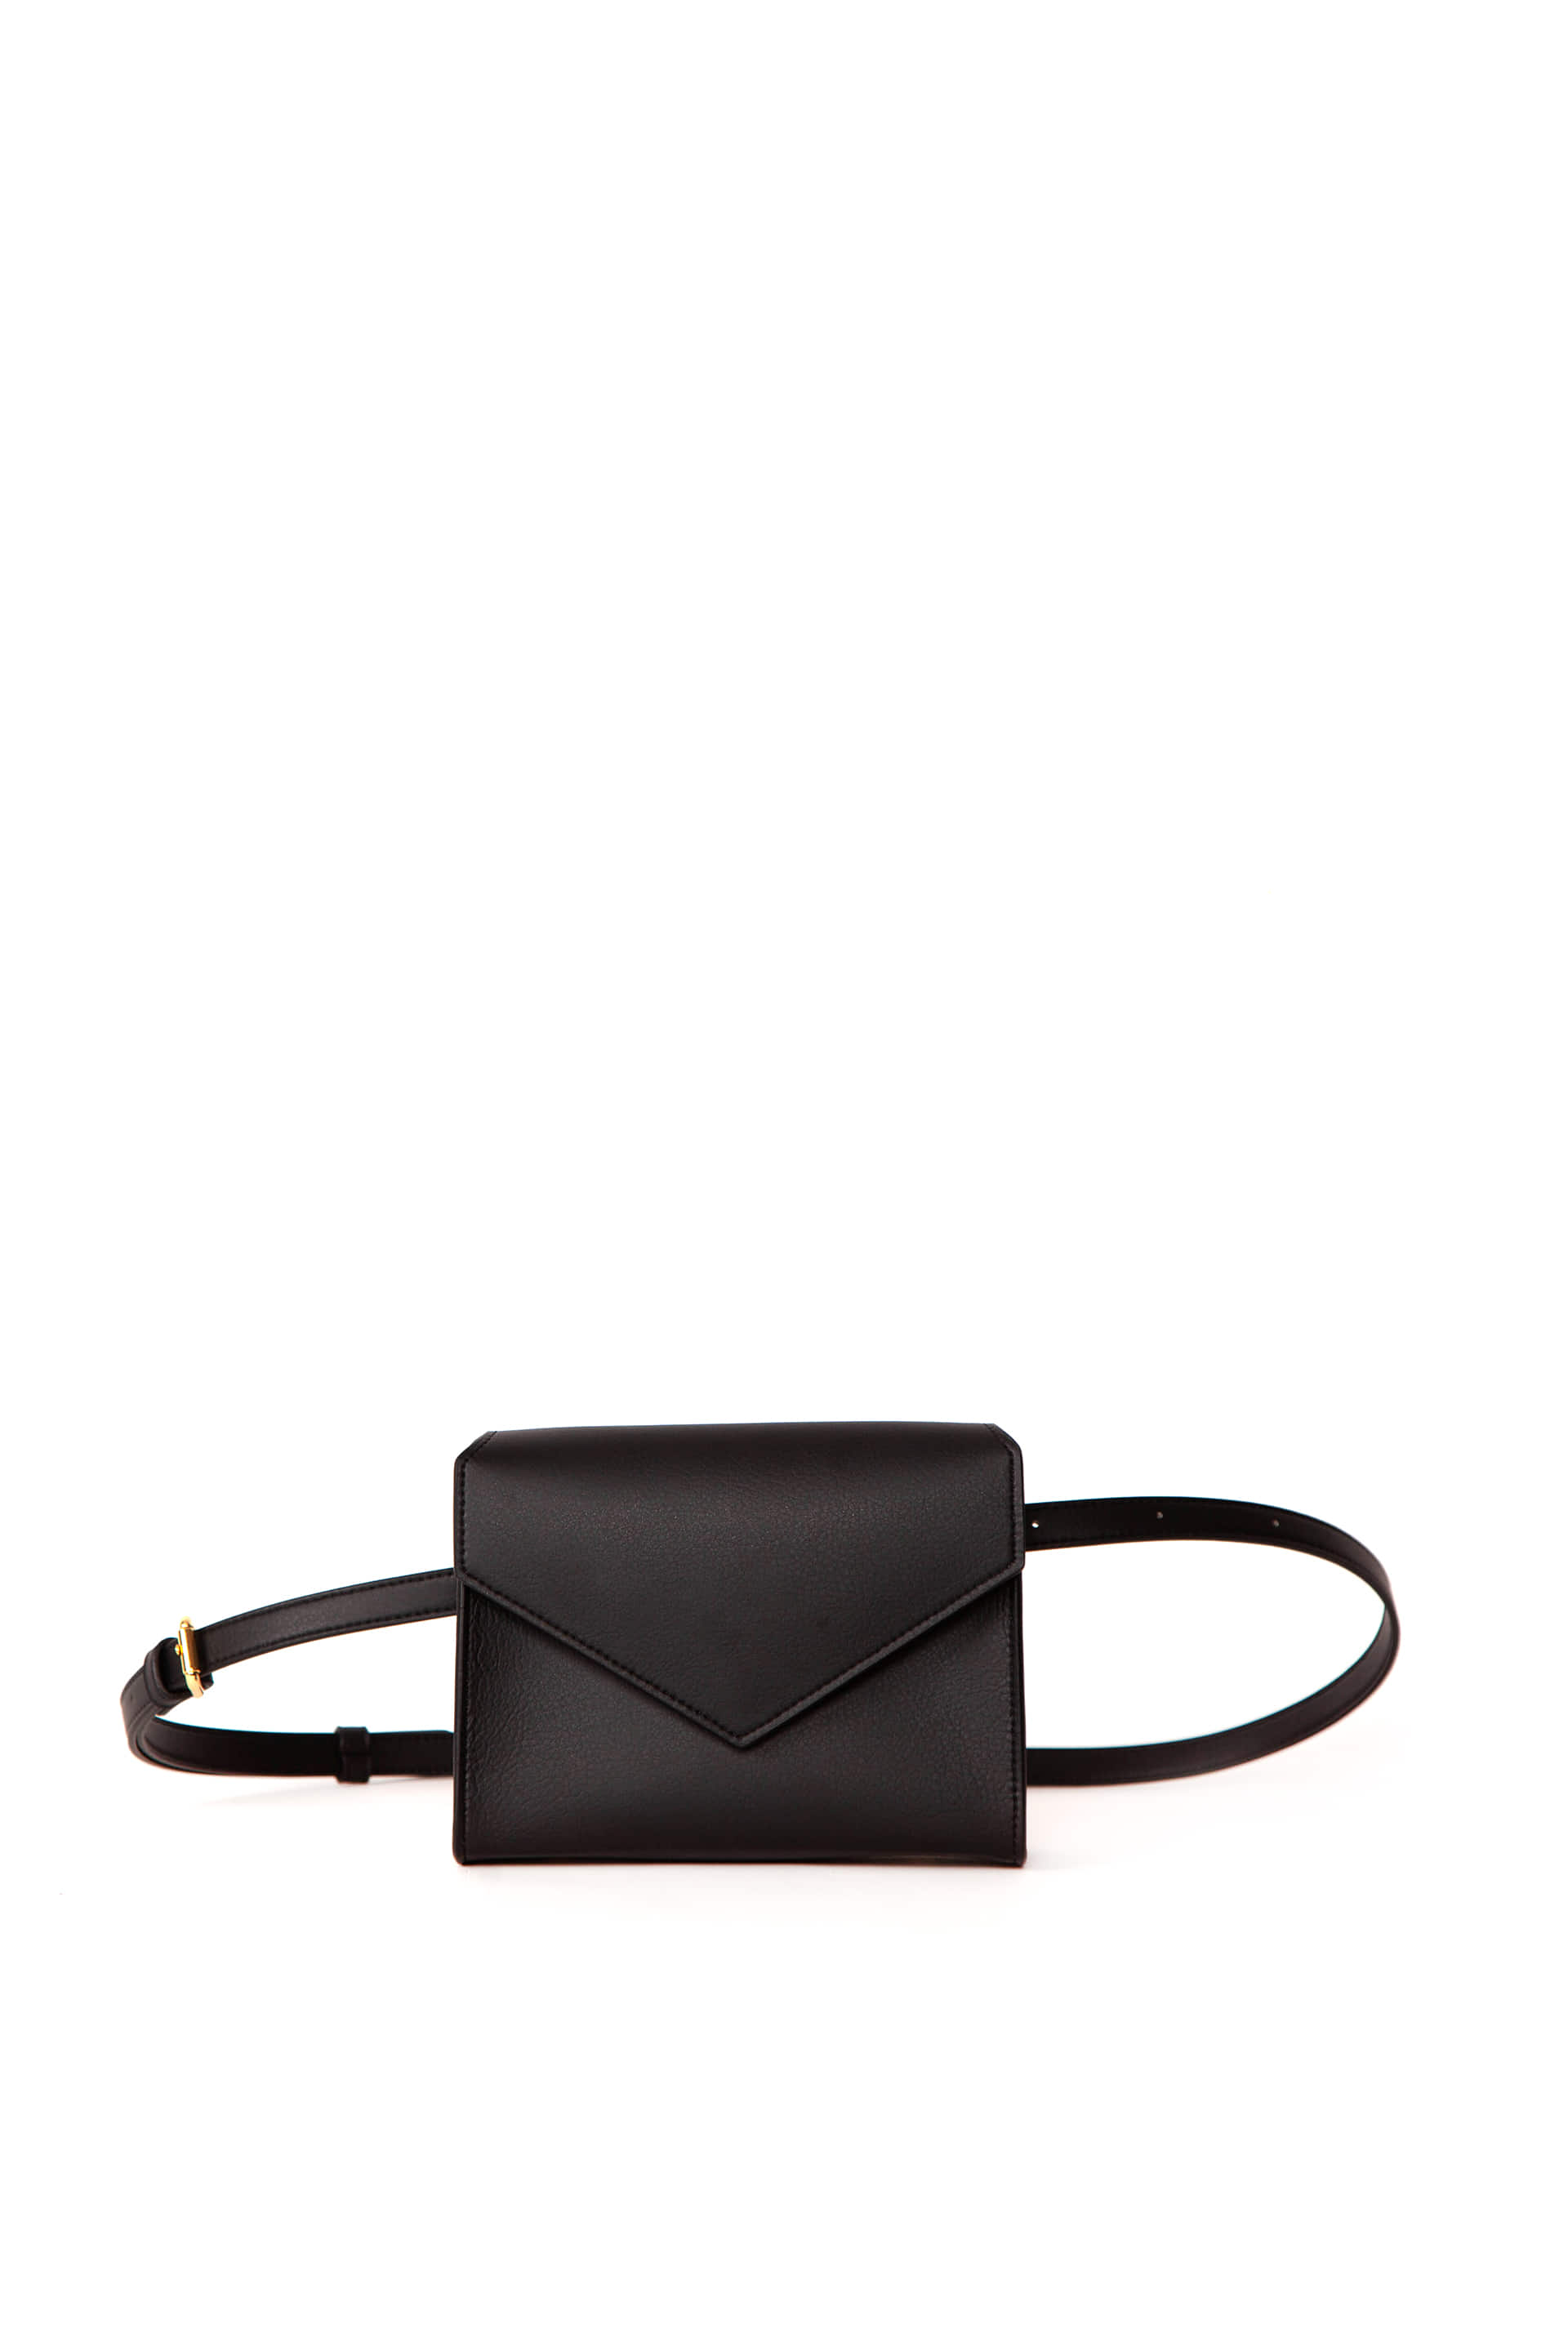 4-way BELT BAG 22 Black